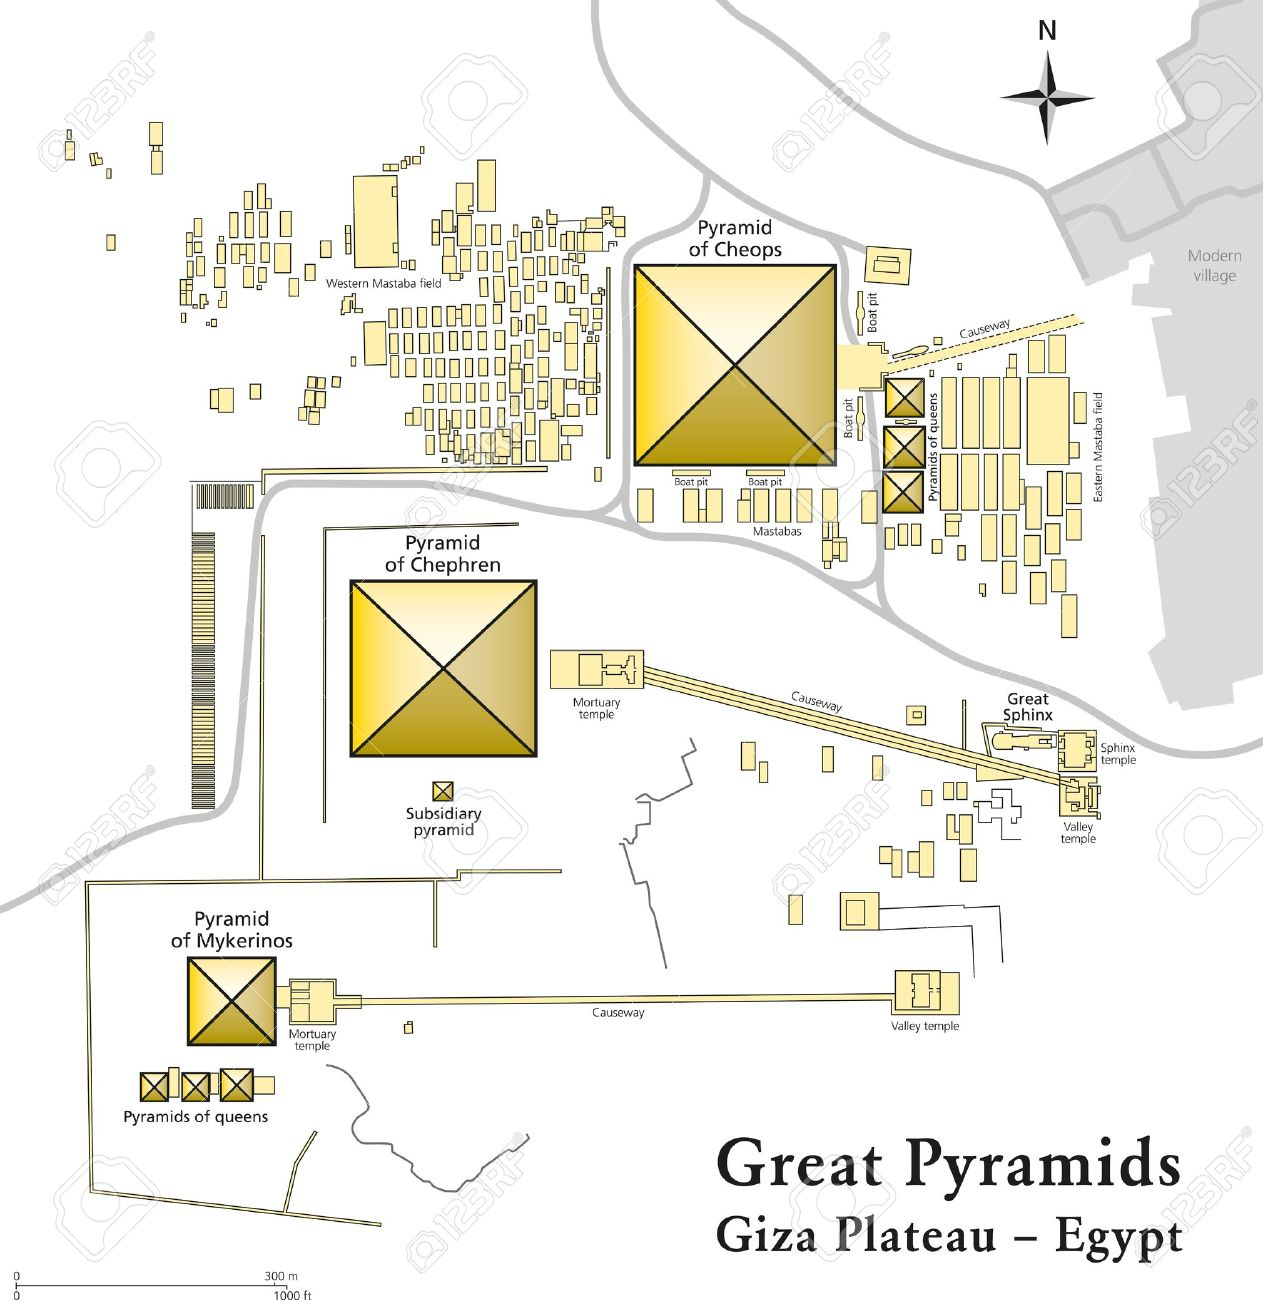 Egypt Pyramids Of Giza Map Royalty Free Cliparts Vectors And - Map of egypt pyramids and sphinx